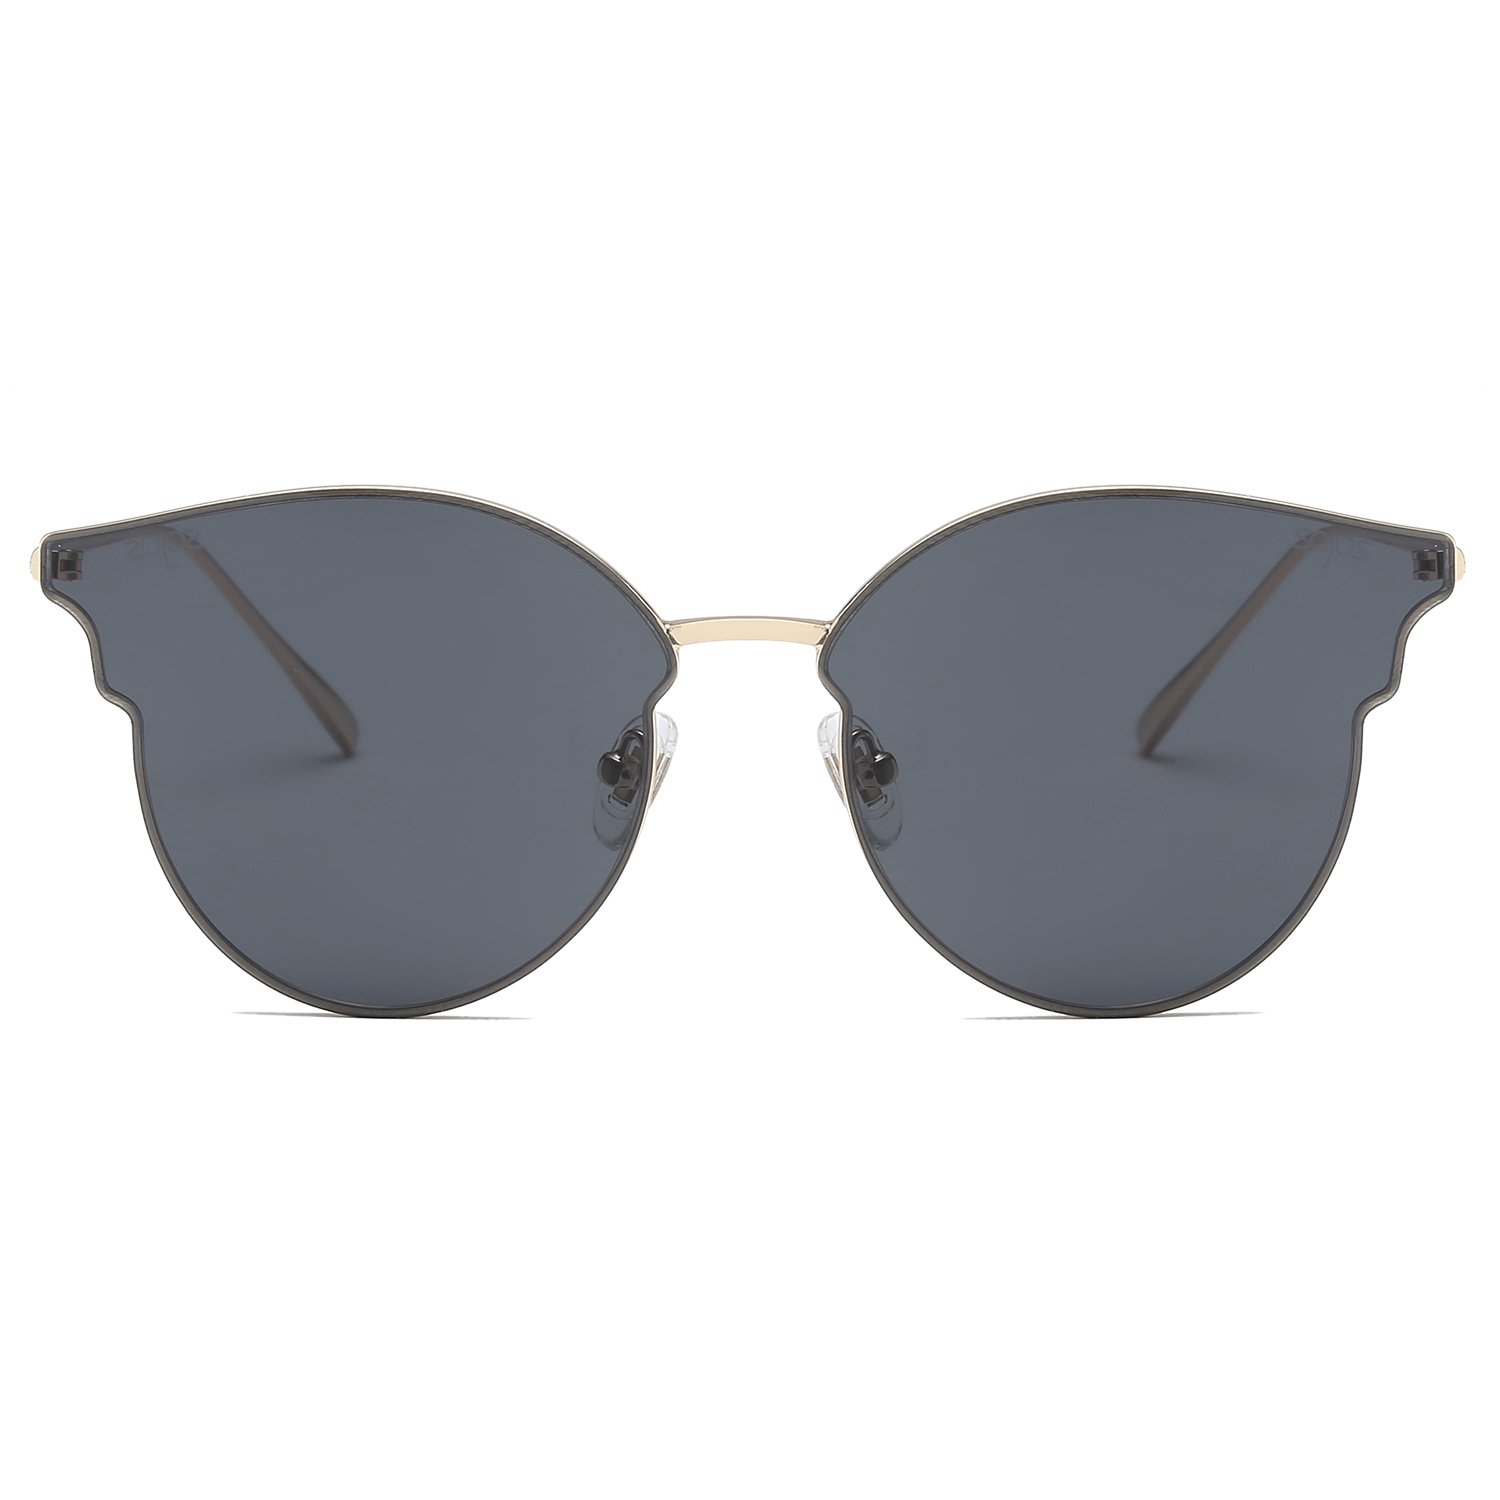 SOJOS Fashion Cateye Sunglasses for Women Flat Lens SJ1070 with Gold Frame/Grey Lens by SOJOS